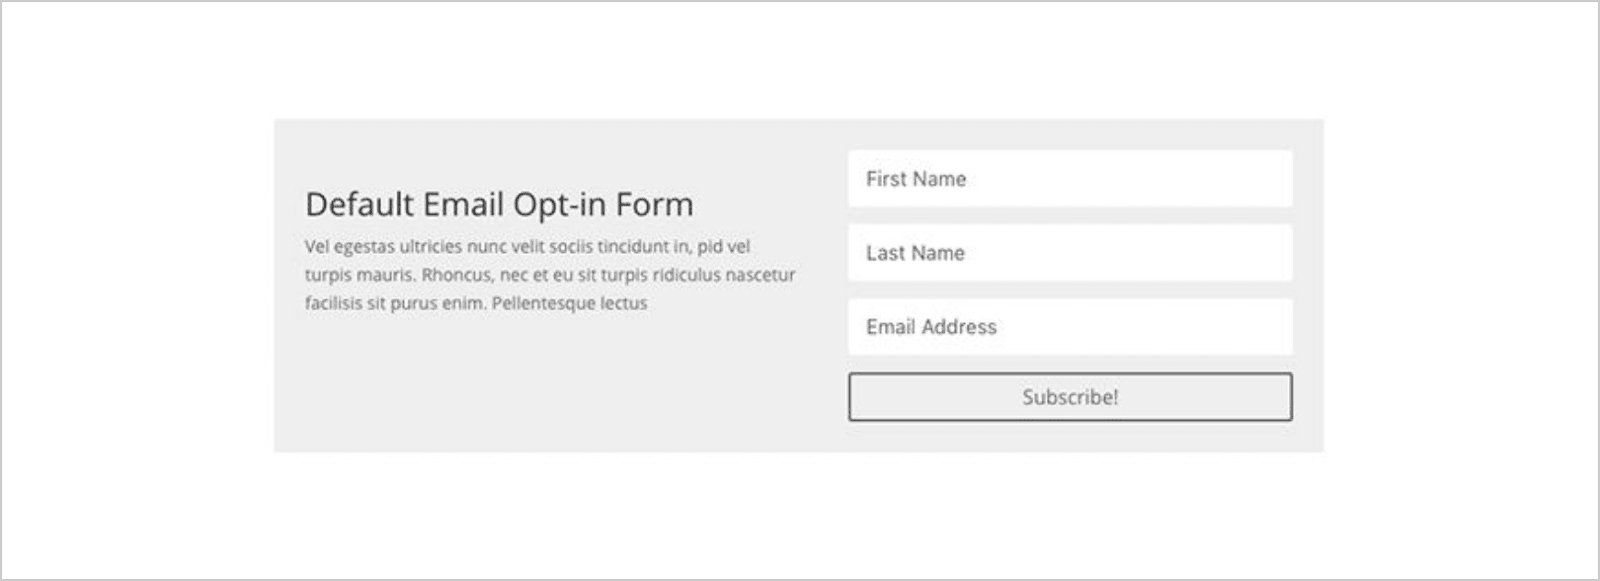 email-opt-in-form